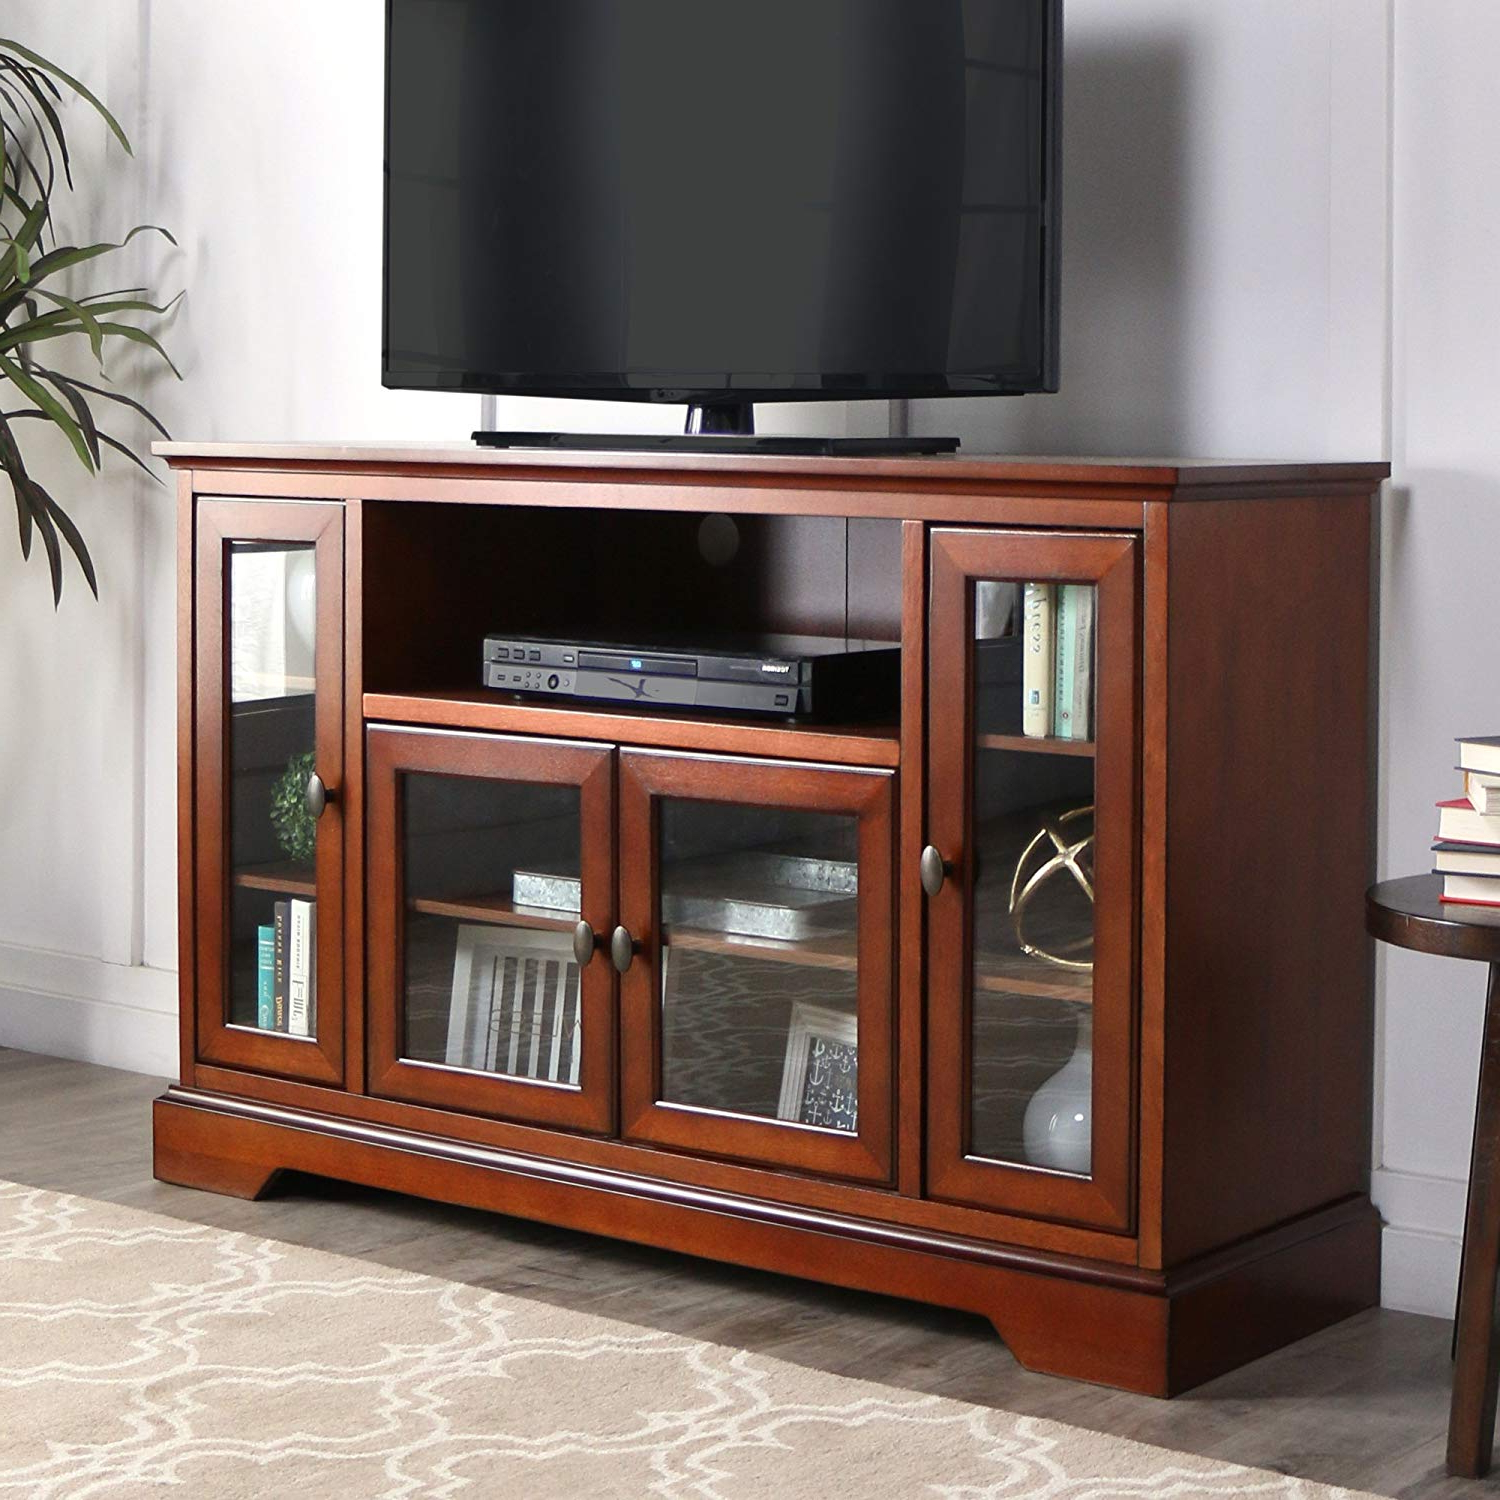 "Well Liked Amazon: We Furniture 52"" Wood Highboy Style Tall Tv Stand Inside Antique Style Tv Stands (View 18 of 20)"